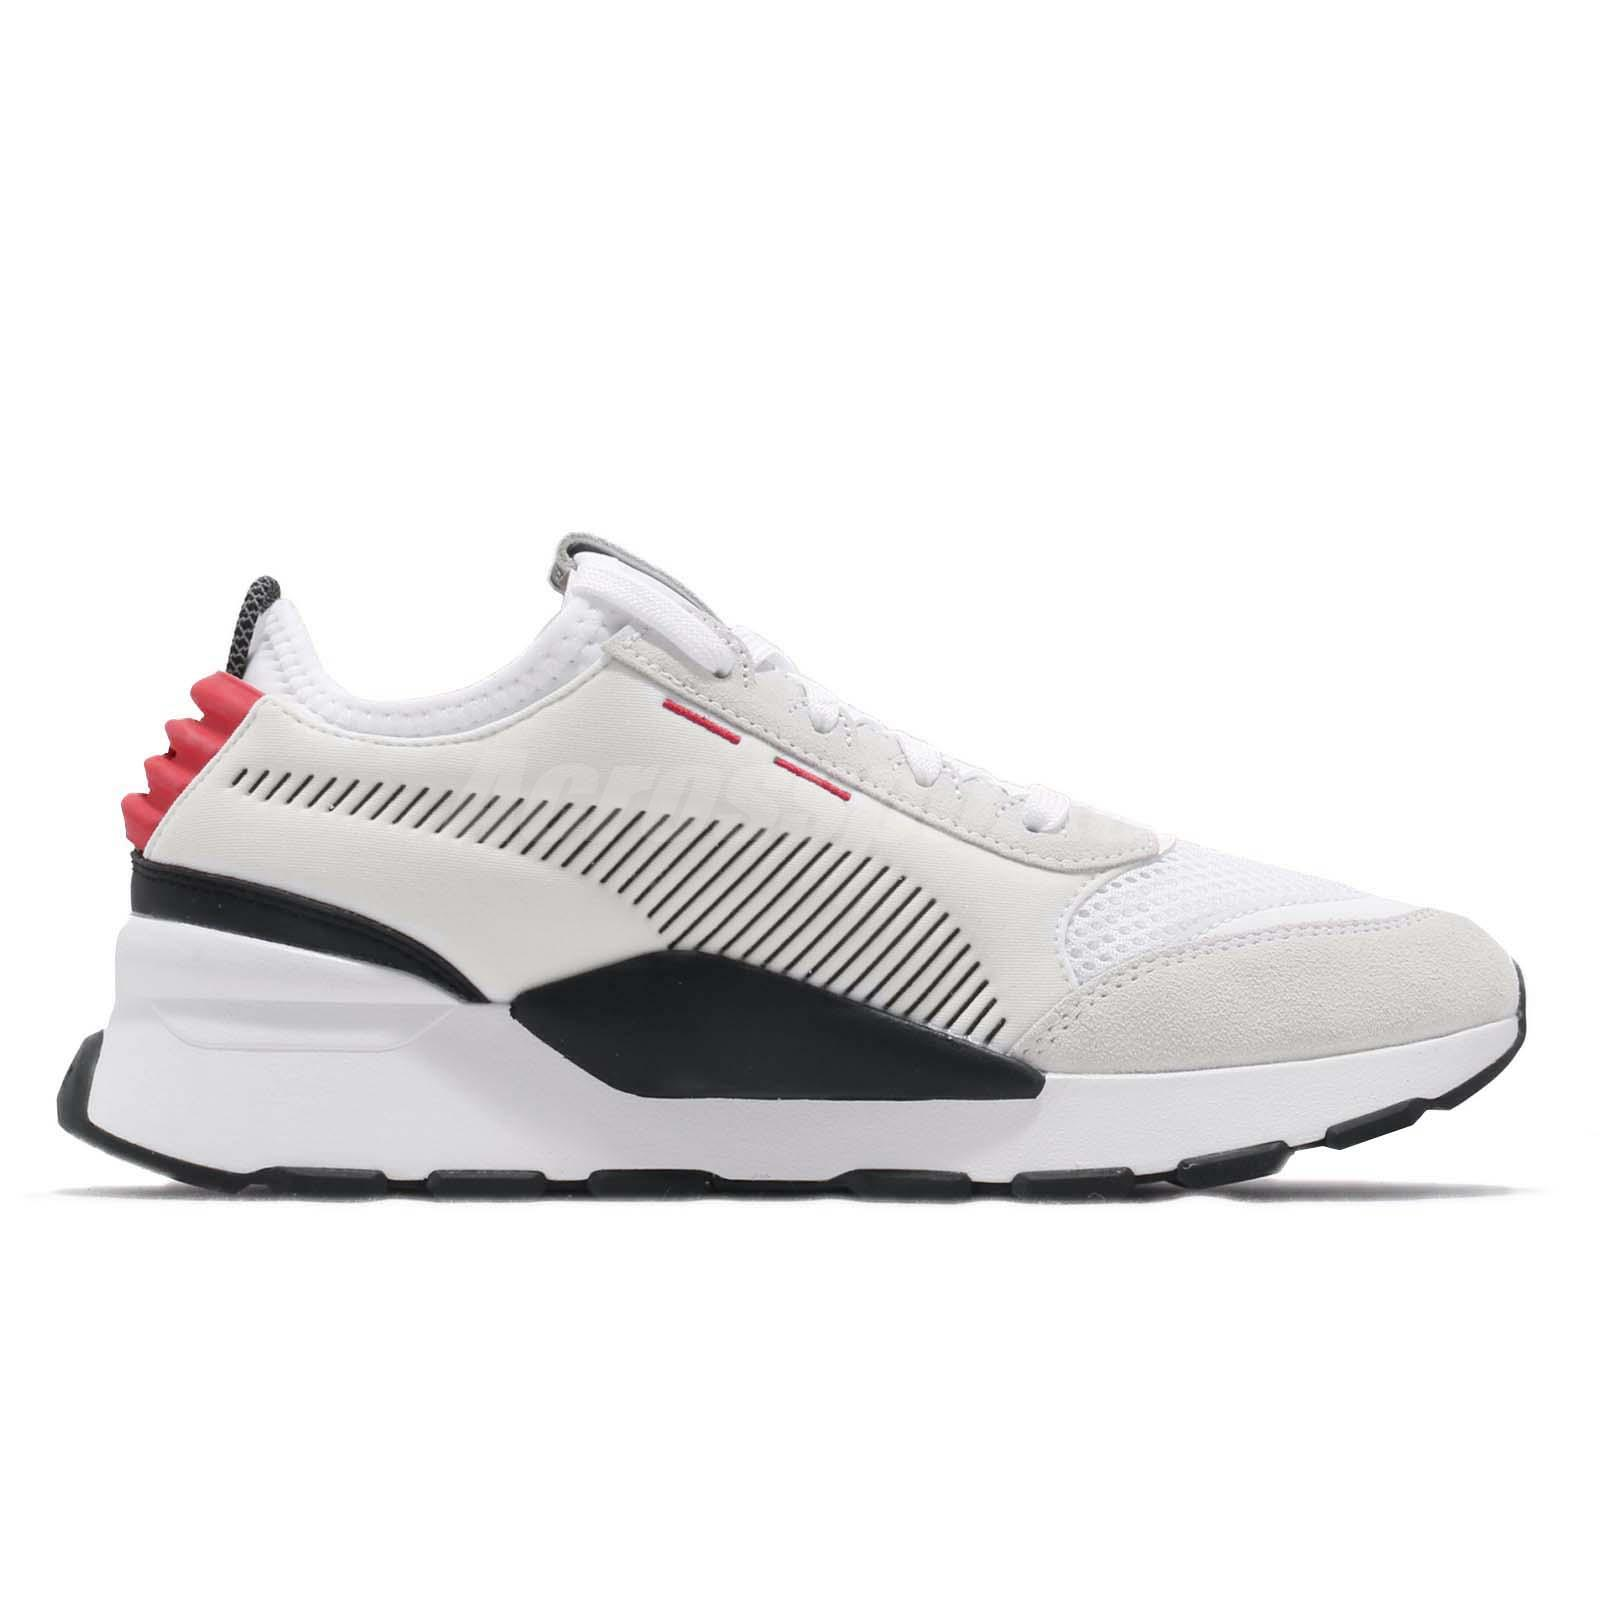 Puma RS-0 Winter INJ Toys Running System White Red Men Shoes ... 6e79c1d4b